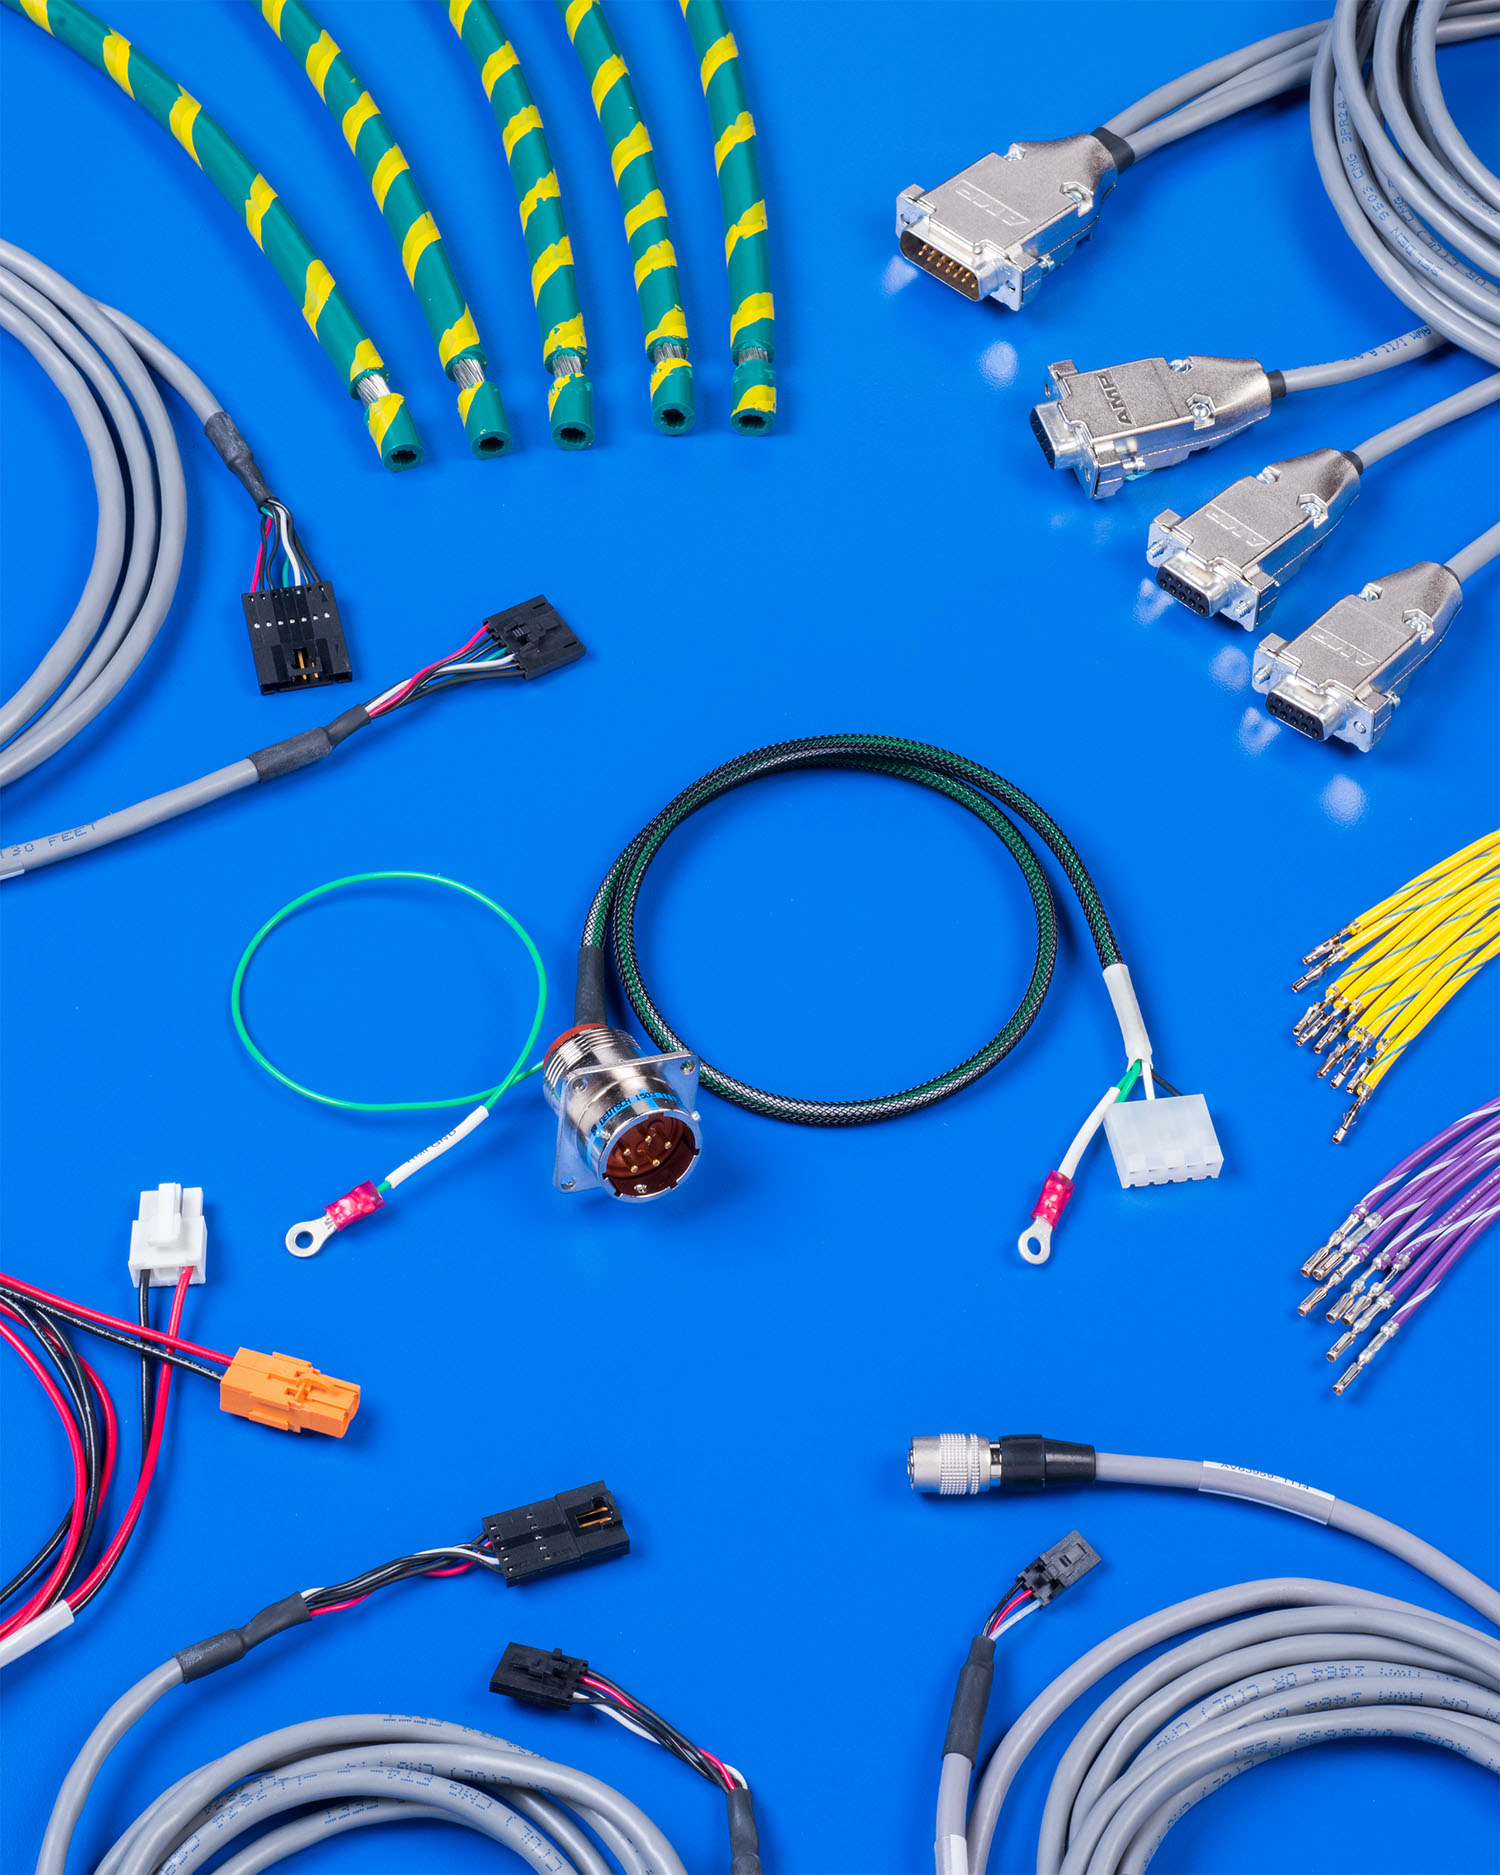 CABLE & HARNESS ASSEMBLY PROVIDES FULLY AUTOMATED CONTINUITY TESTING